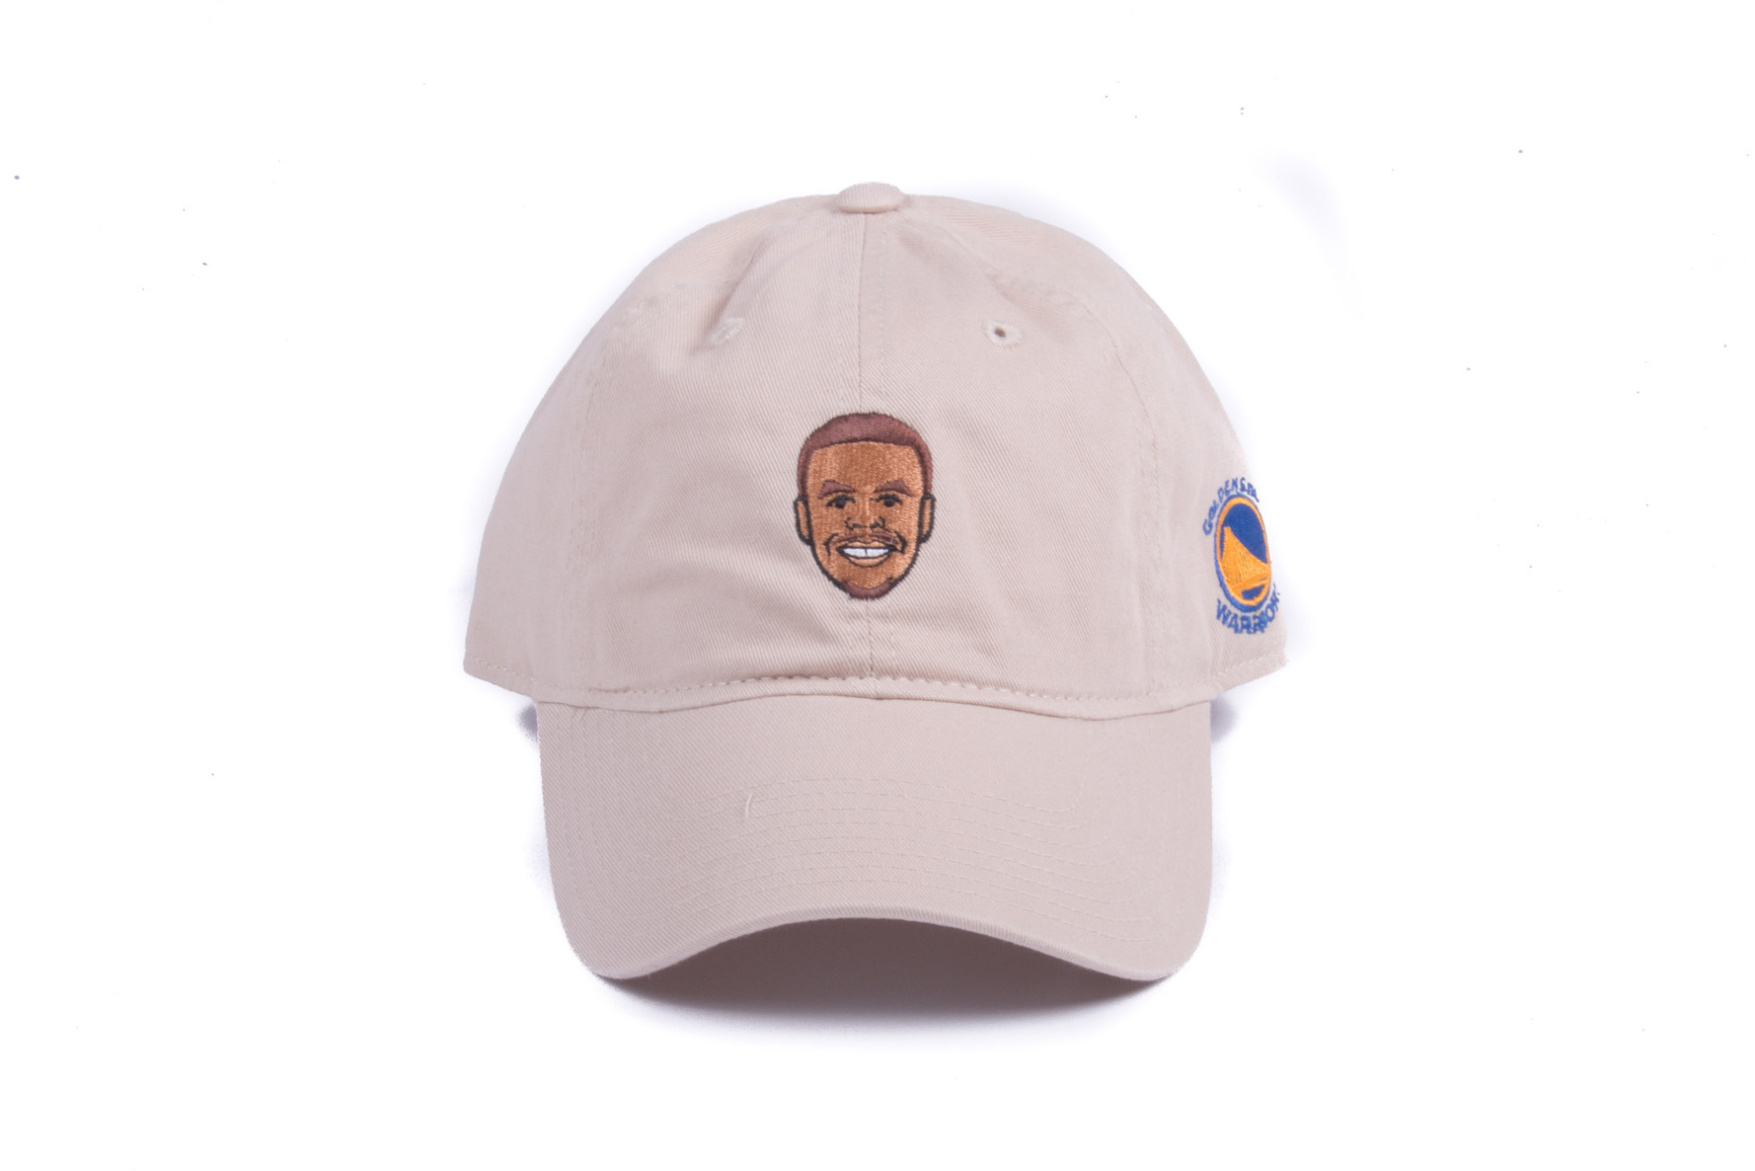 71c5397d1 Adidas Design Dad Hats Of LeBron James, Kobe Bryant, KD & Steph Curry